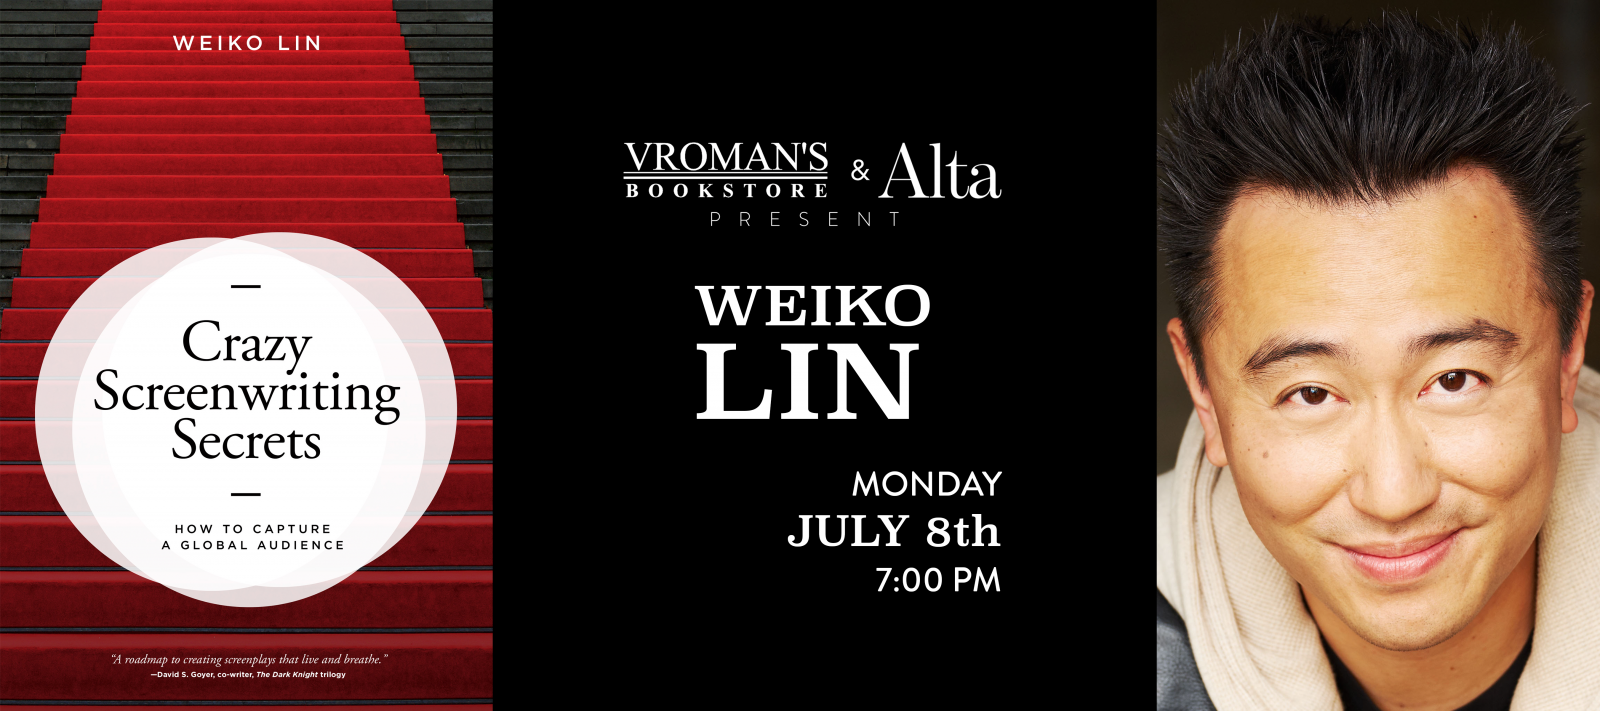 Weiko Lin book signing, Monday July 8th at 7pm